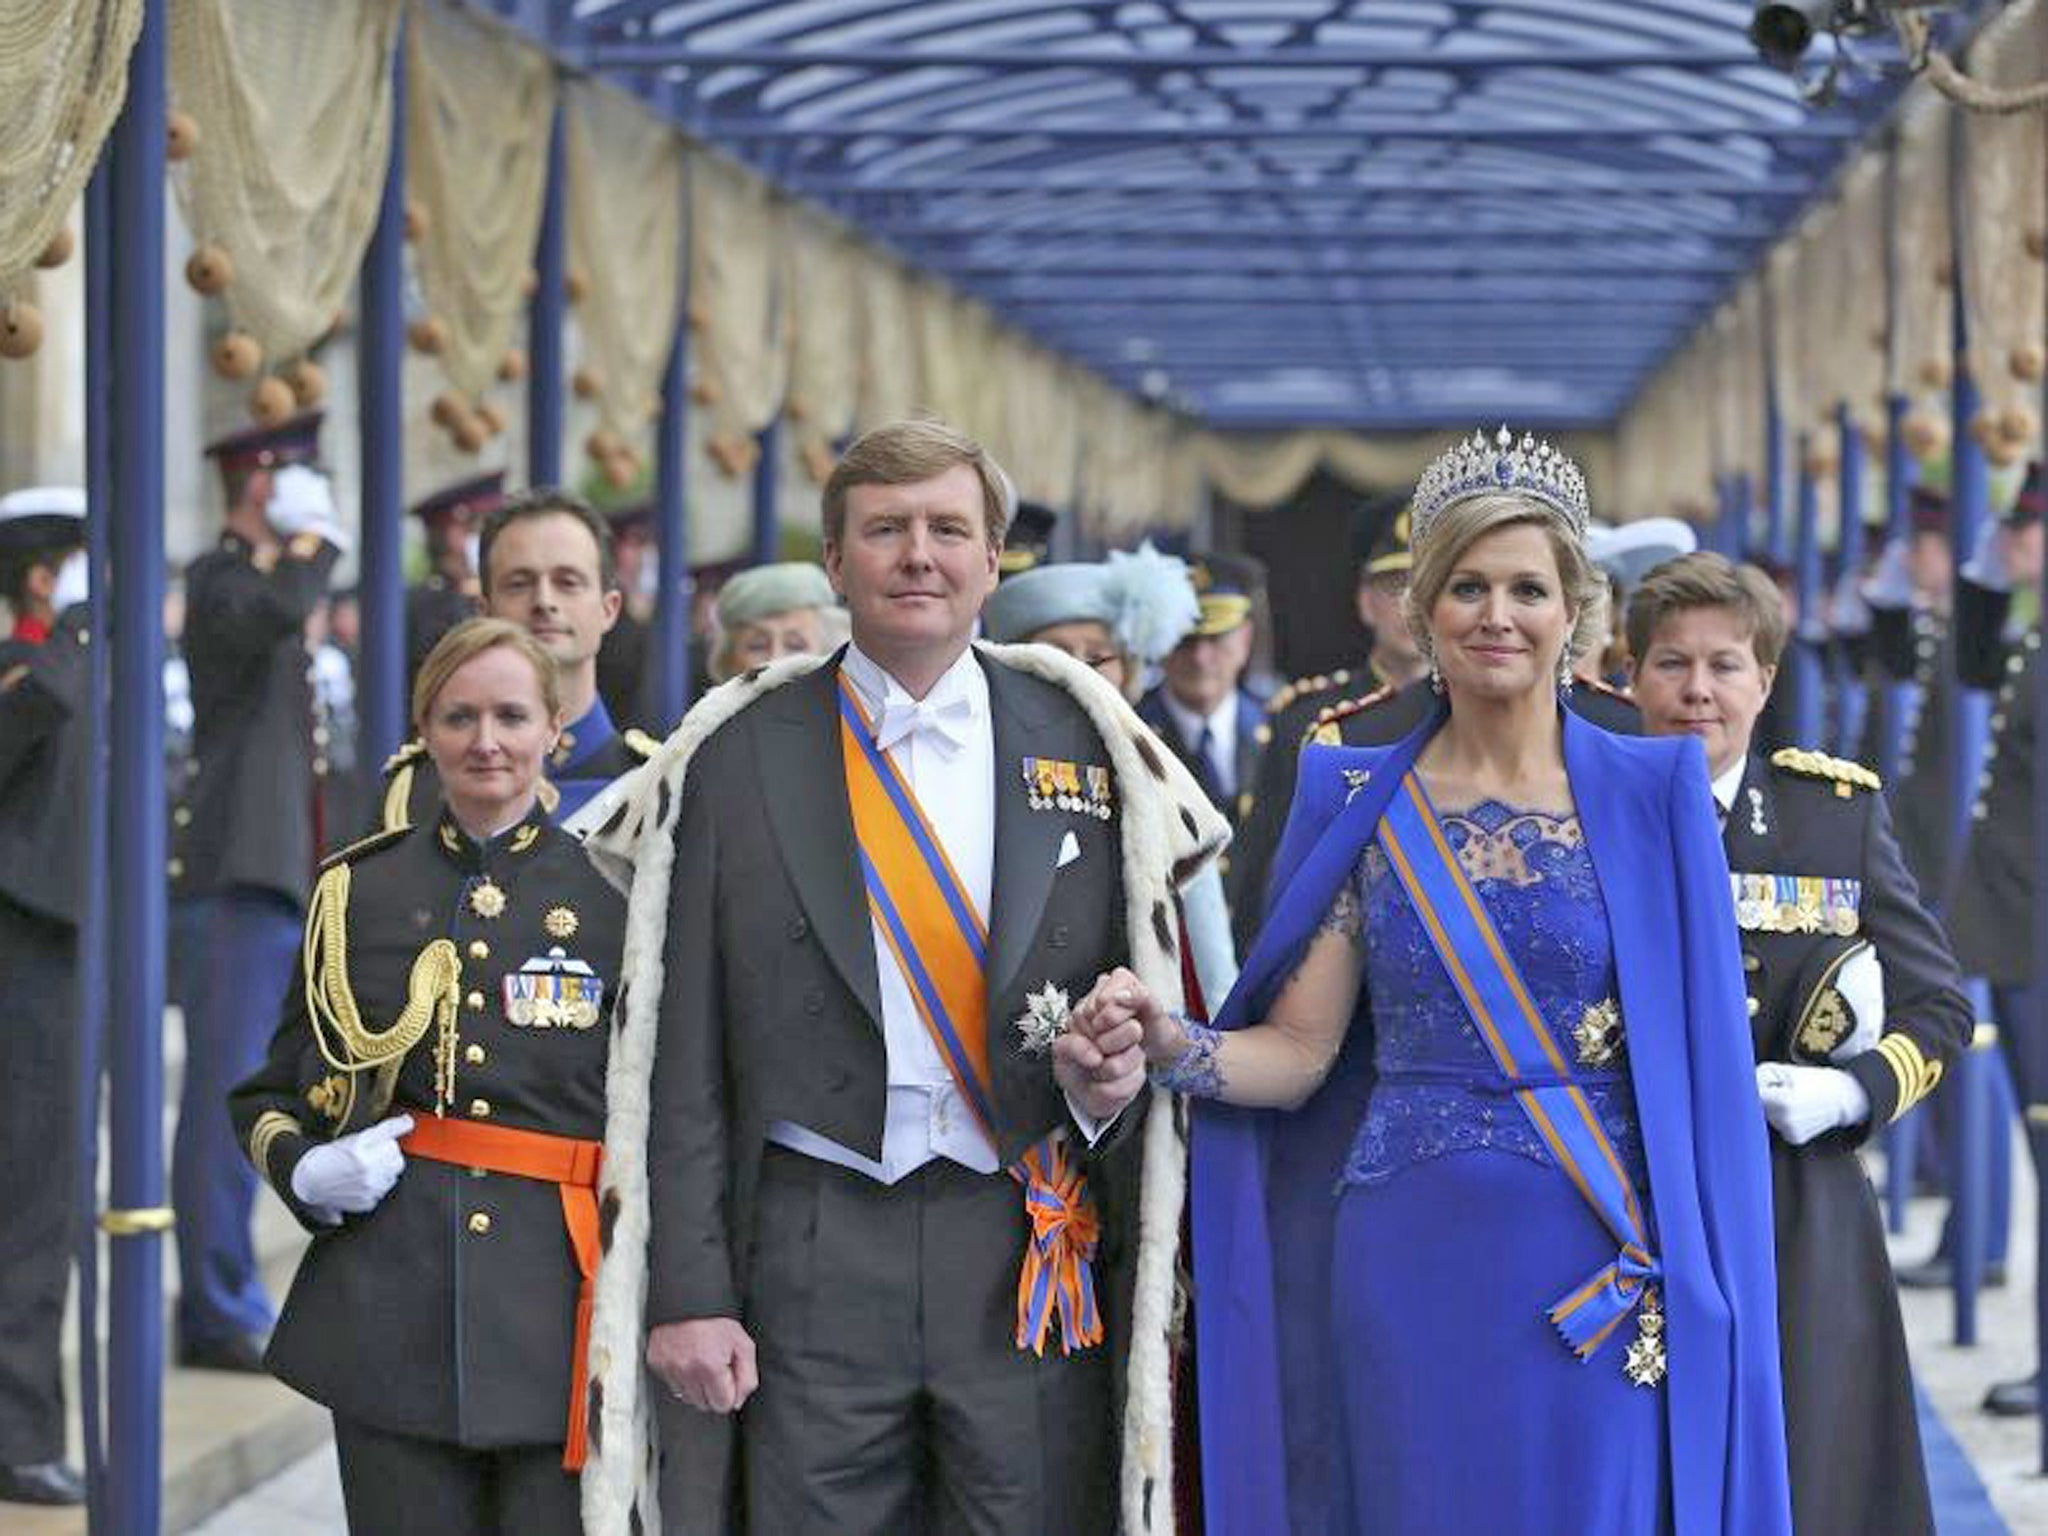 Paint The Town Orange Willem Alexander Sworn In As King Of The